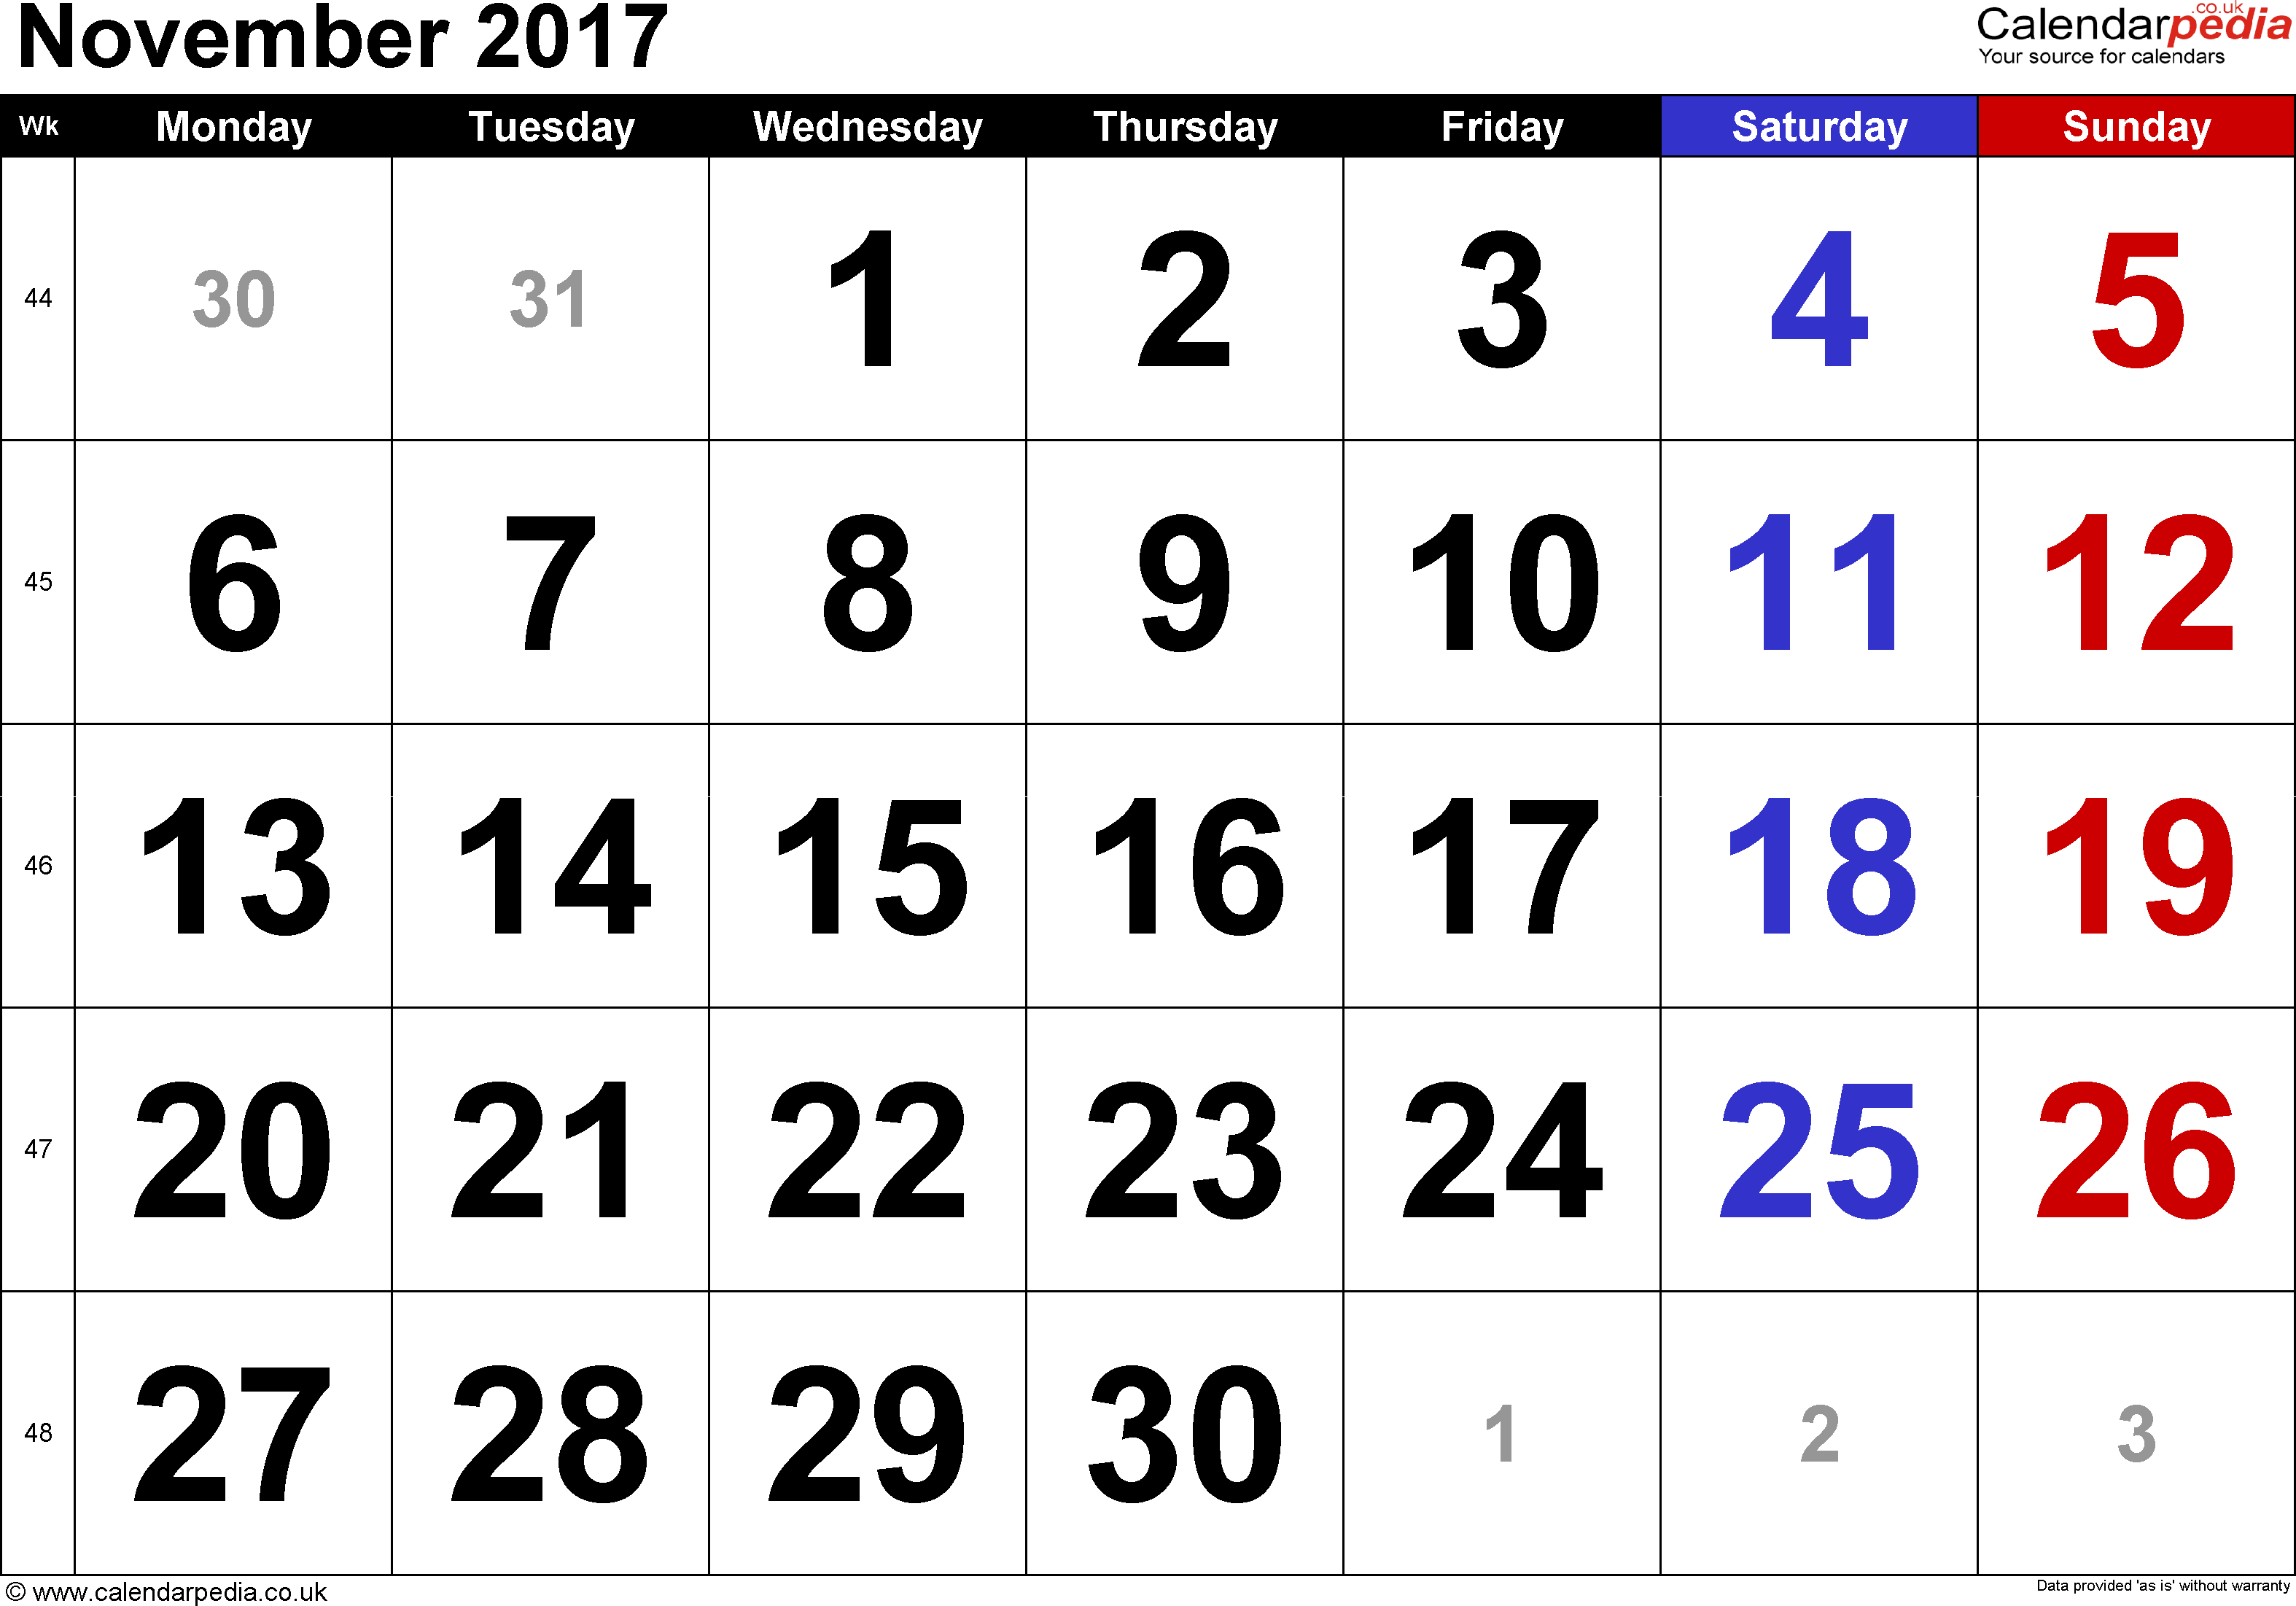 Calendar November 2017, landscape orientation, large numerals, 1 page, with UK bank holidays and week numbers